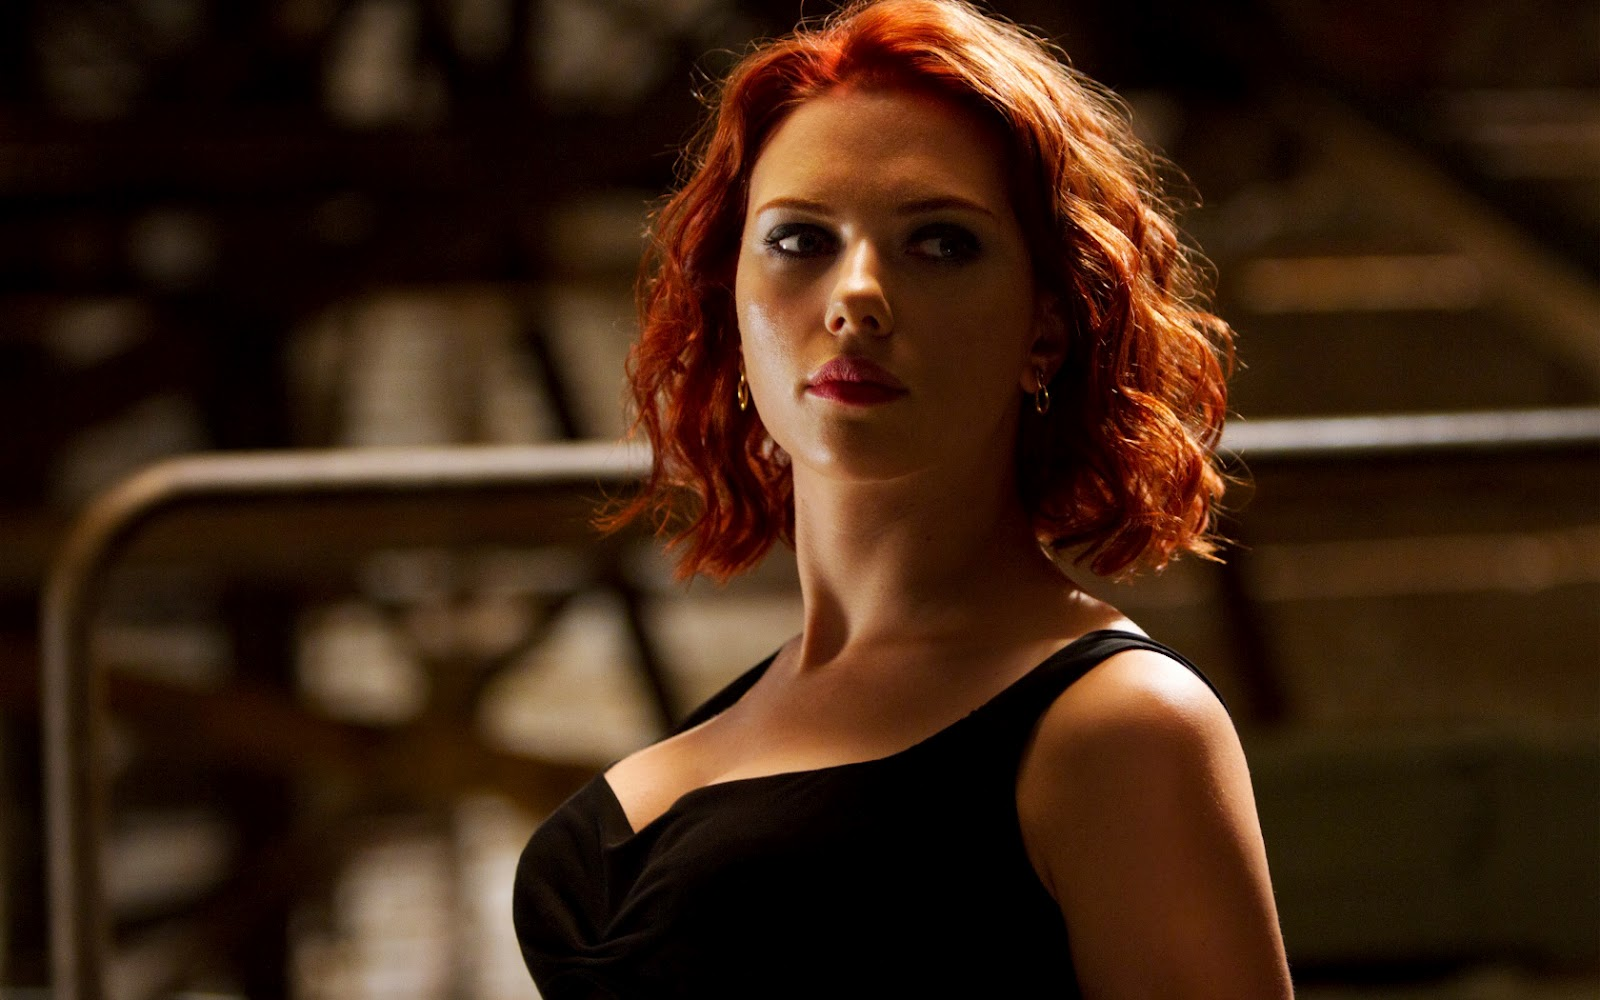 Scarlett Johansson As Black Widow Hd Wallpapers Hd